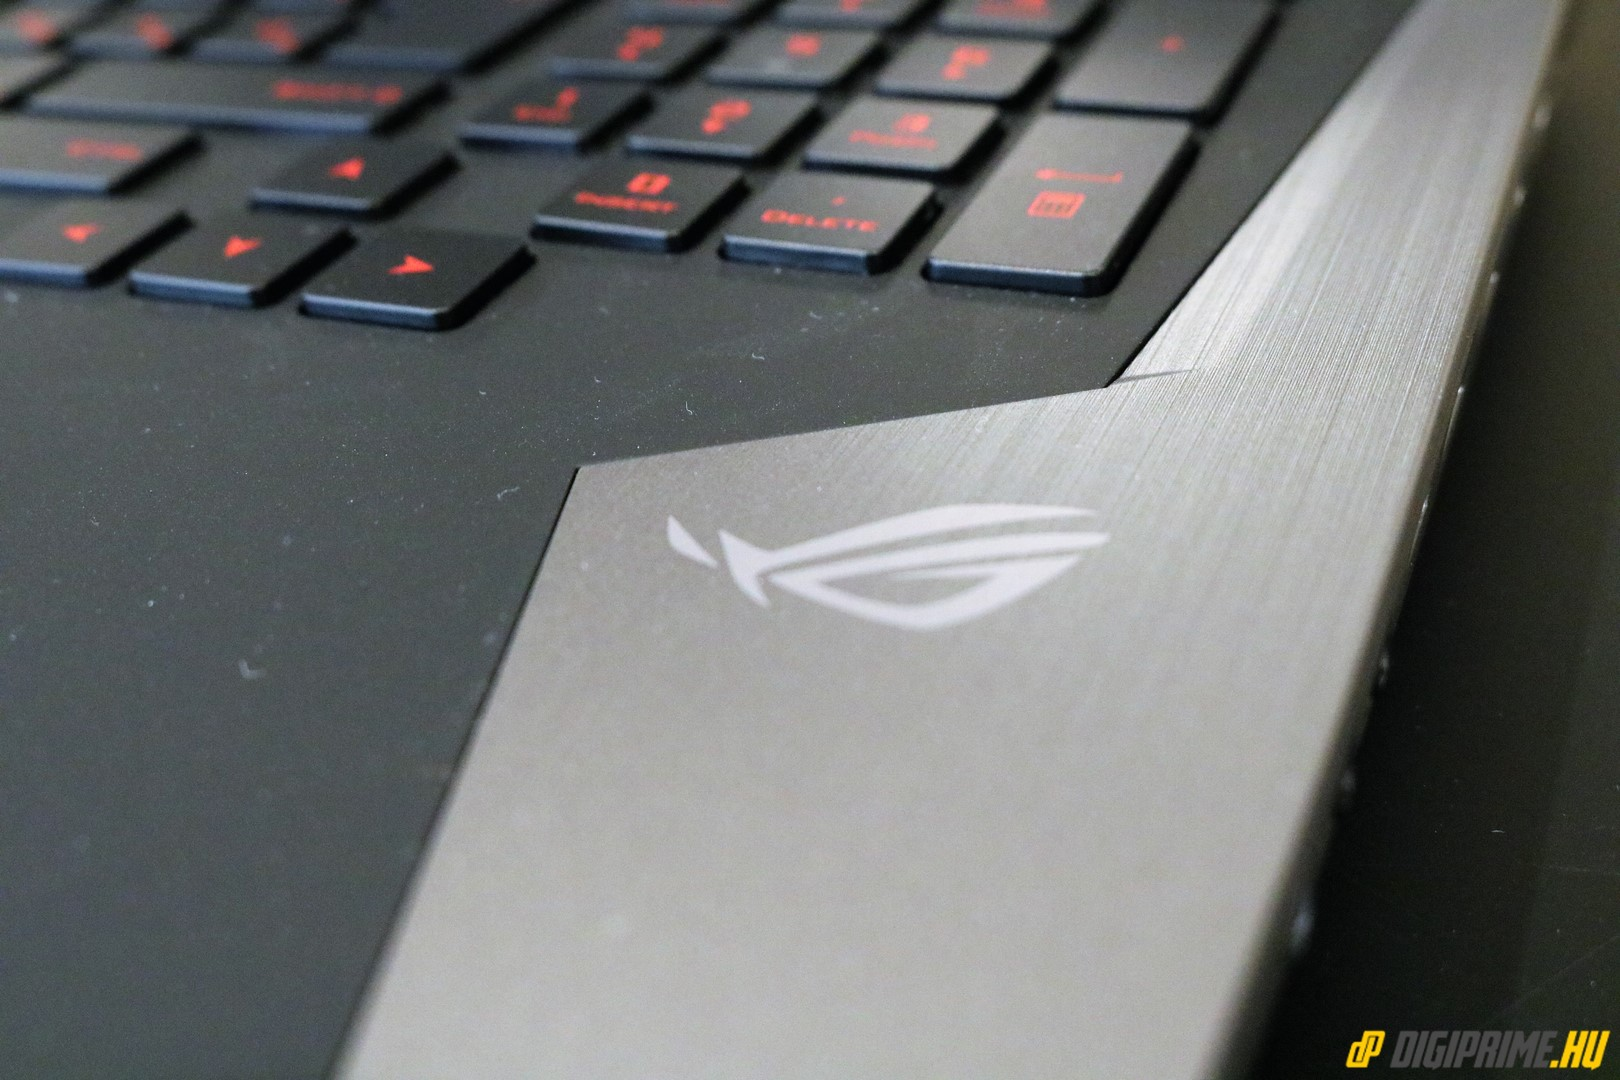 asus rog g752vy gc144t 08 digiprime.hu